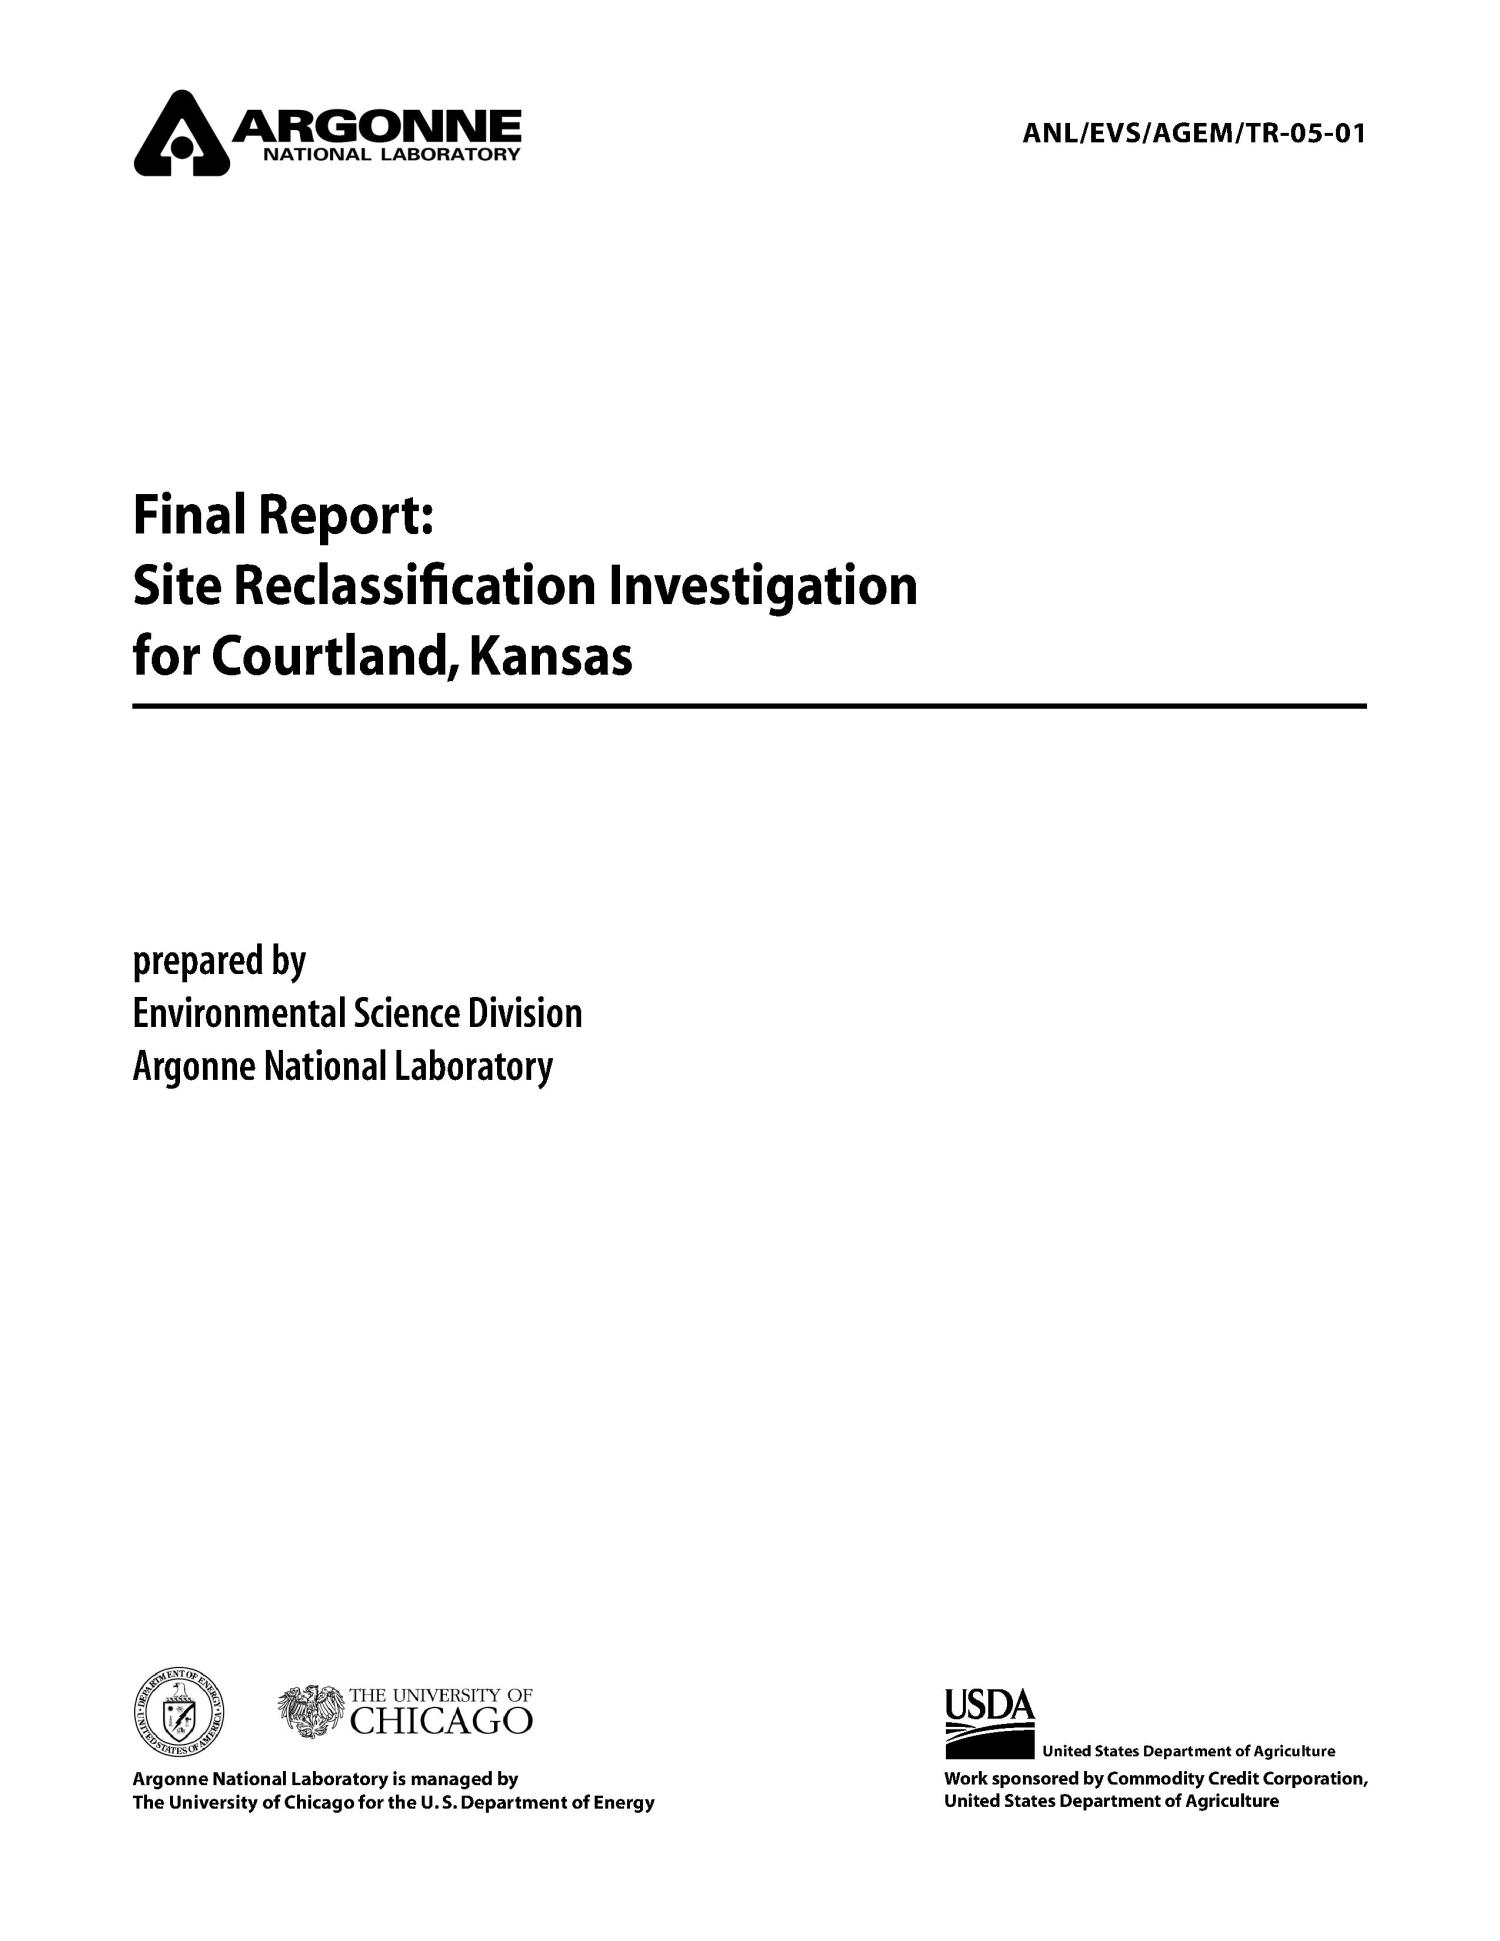 Final report: site reclassification investigation for Courtland, Kansas.                                                                                                      [Sequence #]: 1 of 41